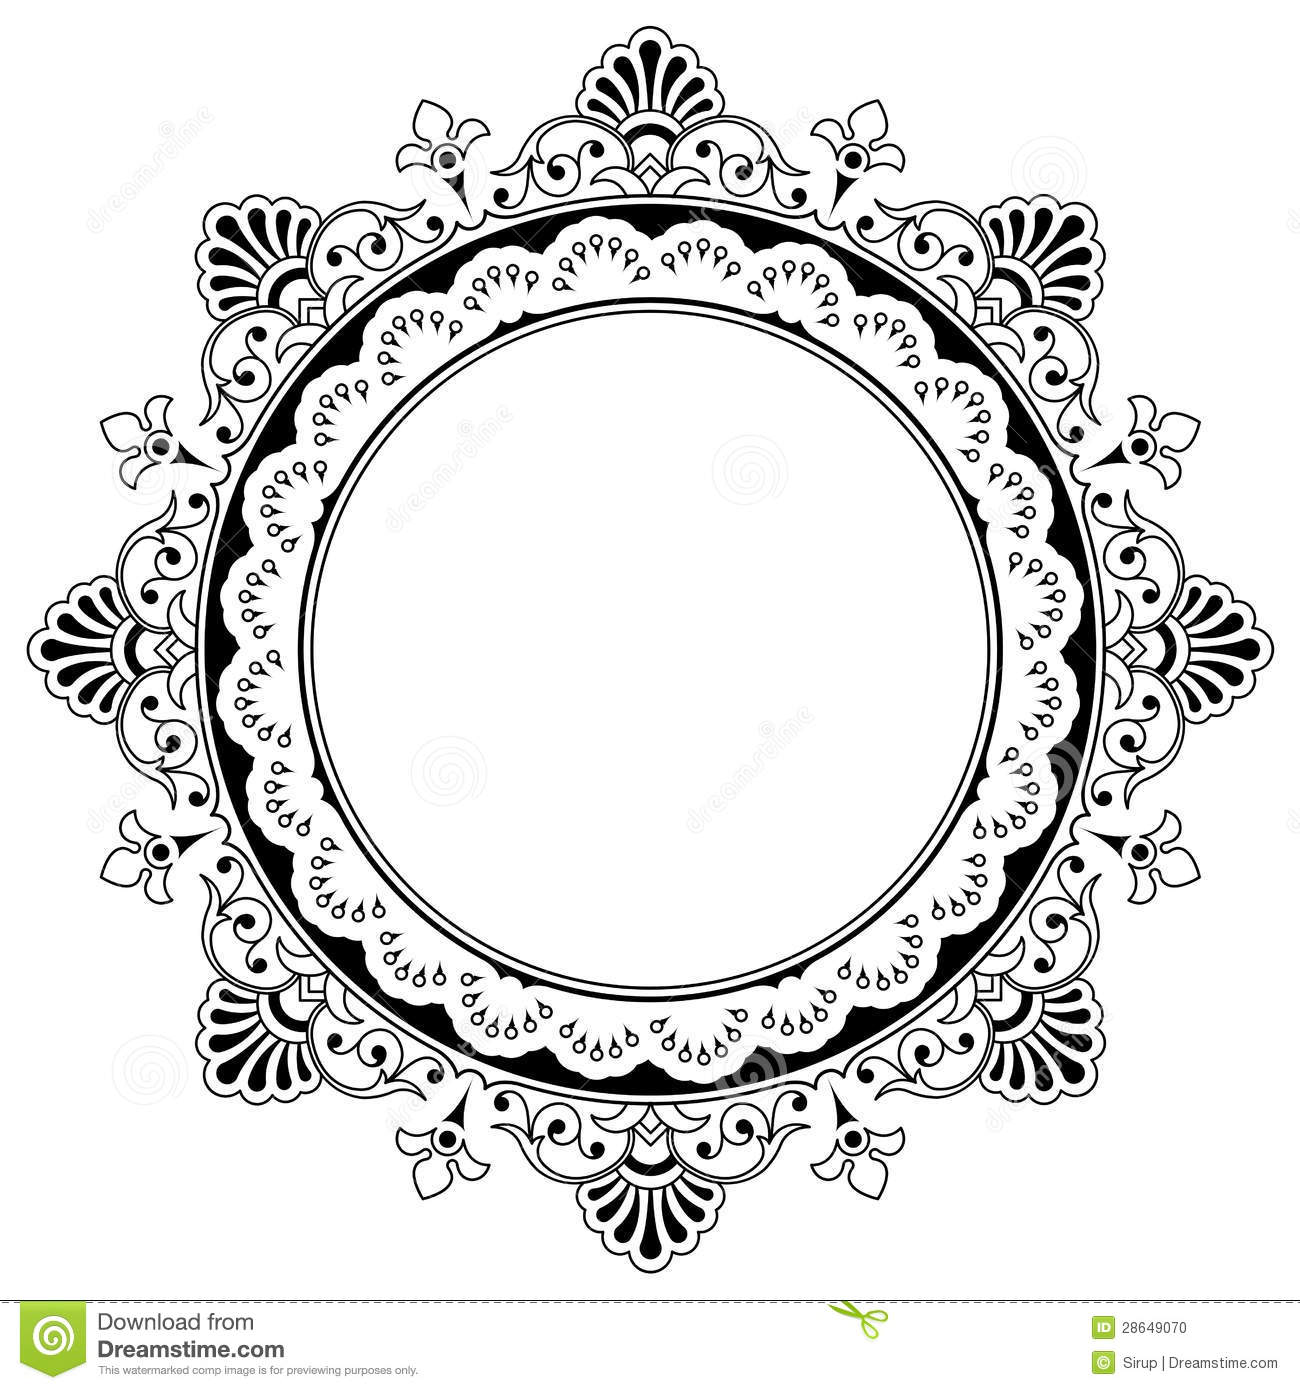 Attractive Round Floral Calligraphic Border